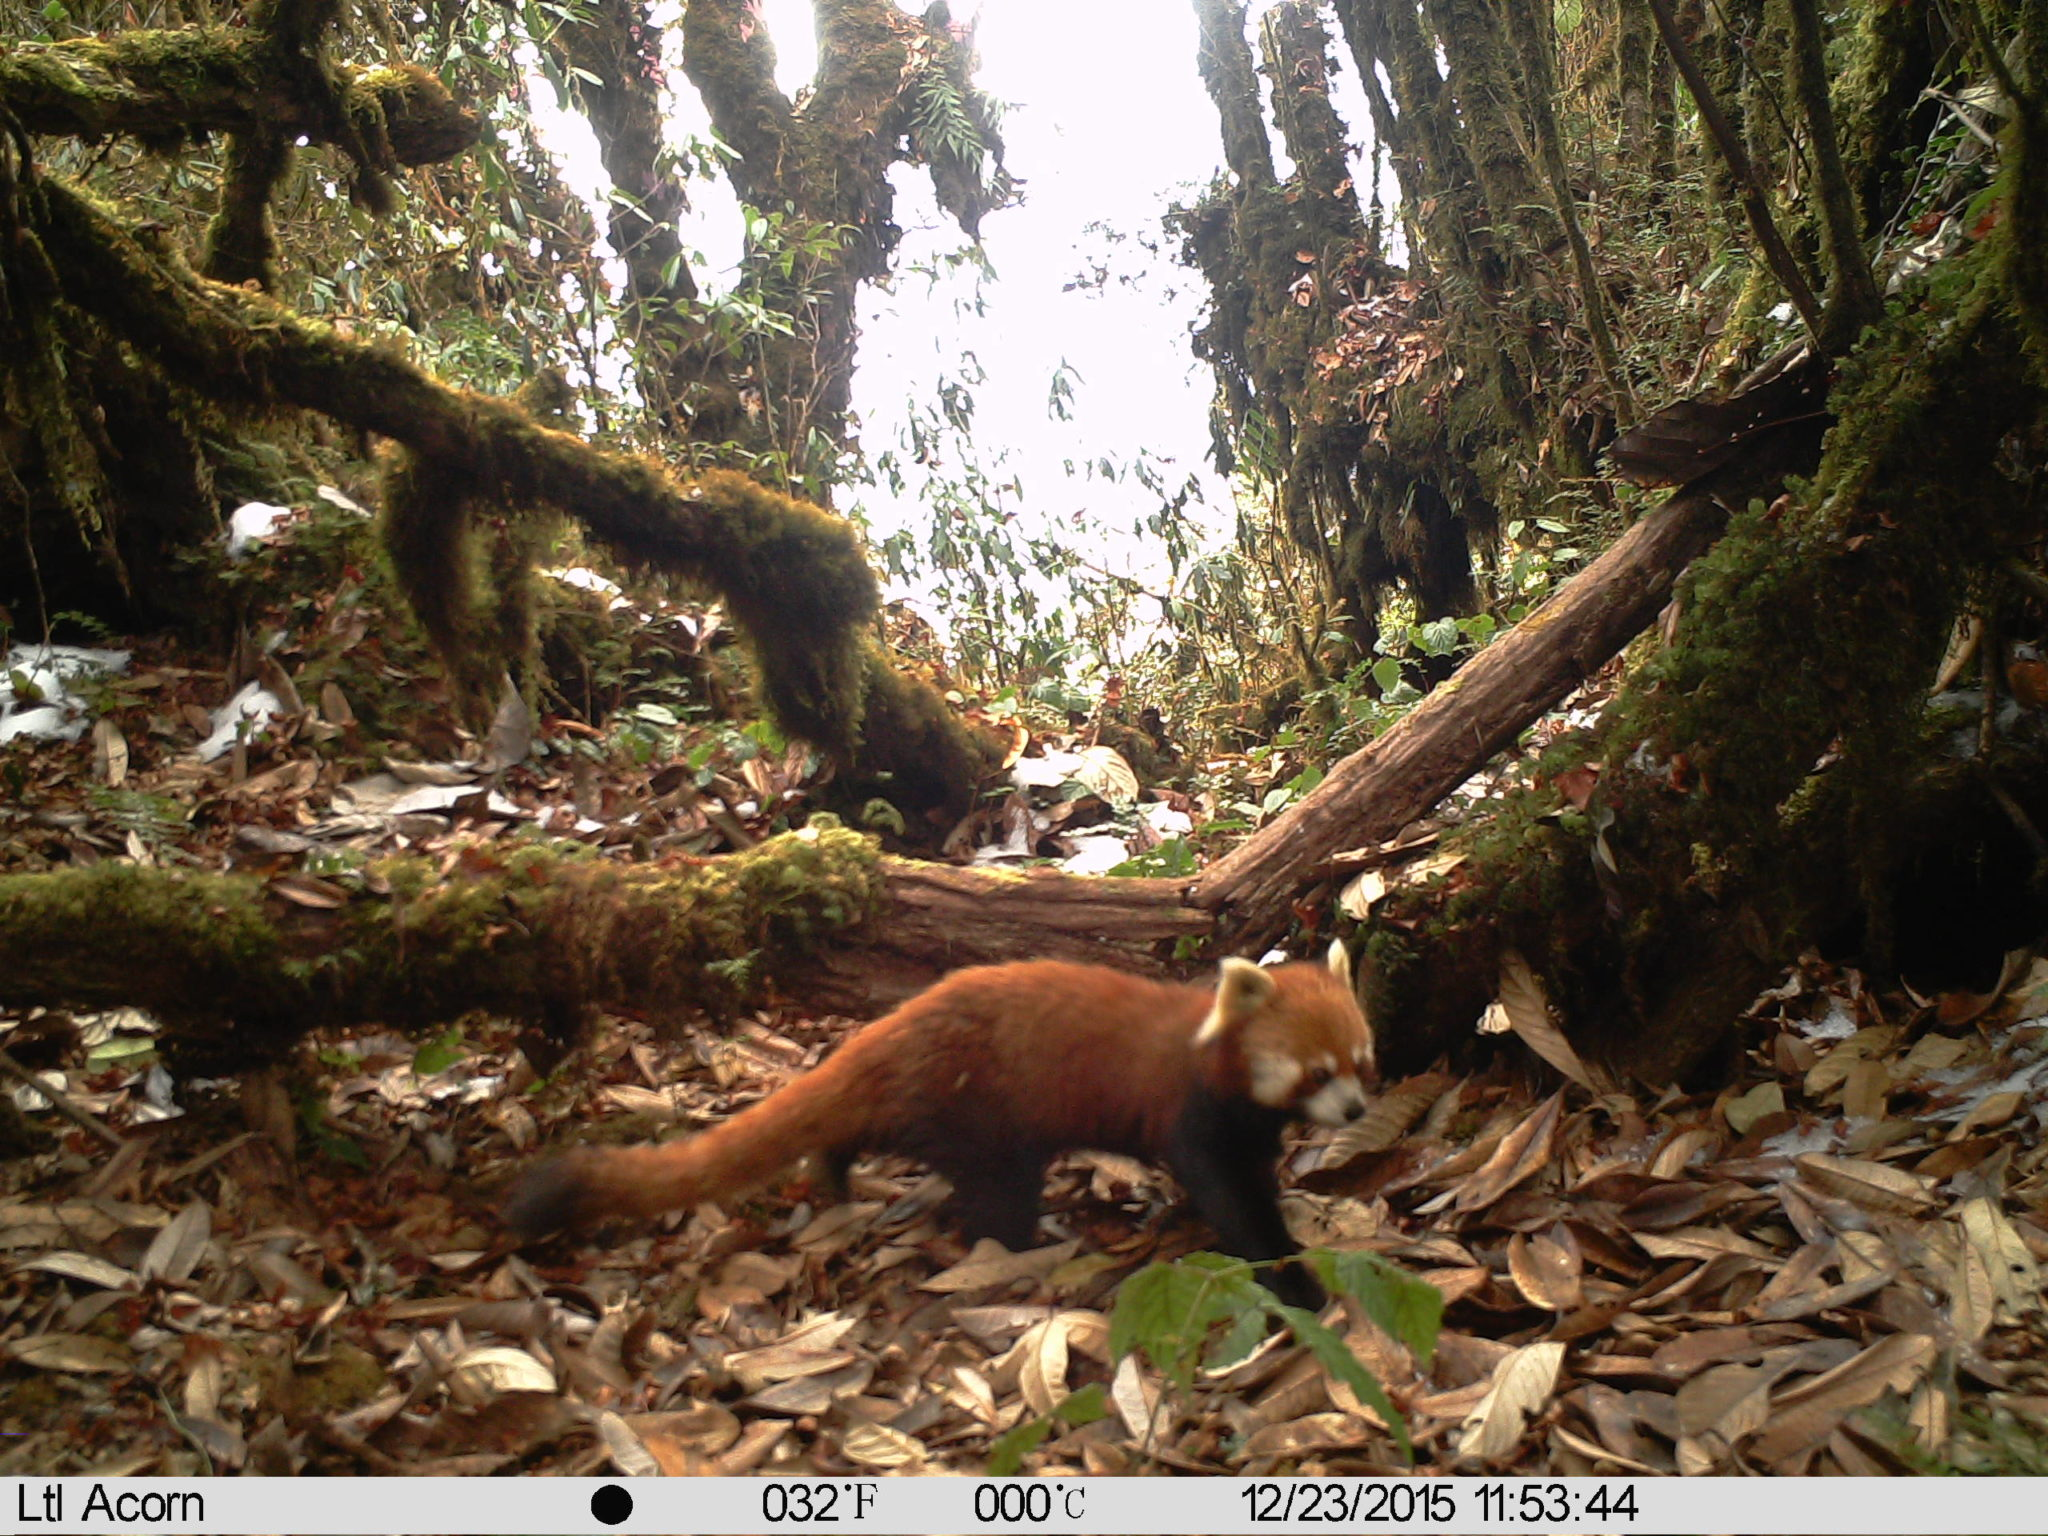 The sole camera trap photo of a red panda, which shows clear tail rings and a red face, leading the researchers to identify it as a Chinese red panda (Ailurus styani). Image courtesy of Southeast Asia Biodiversity Research Institute, Chinese Academy of Sciences